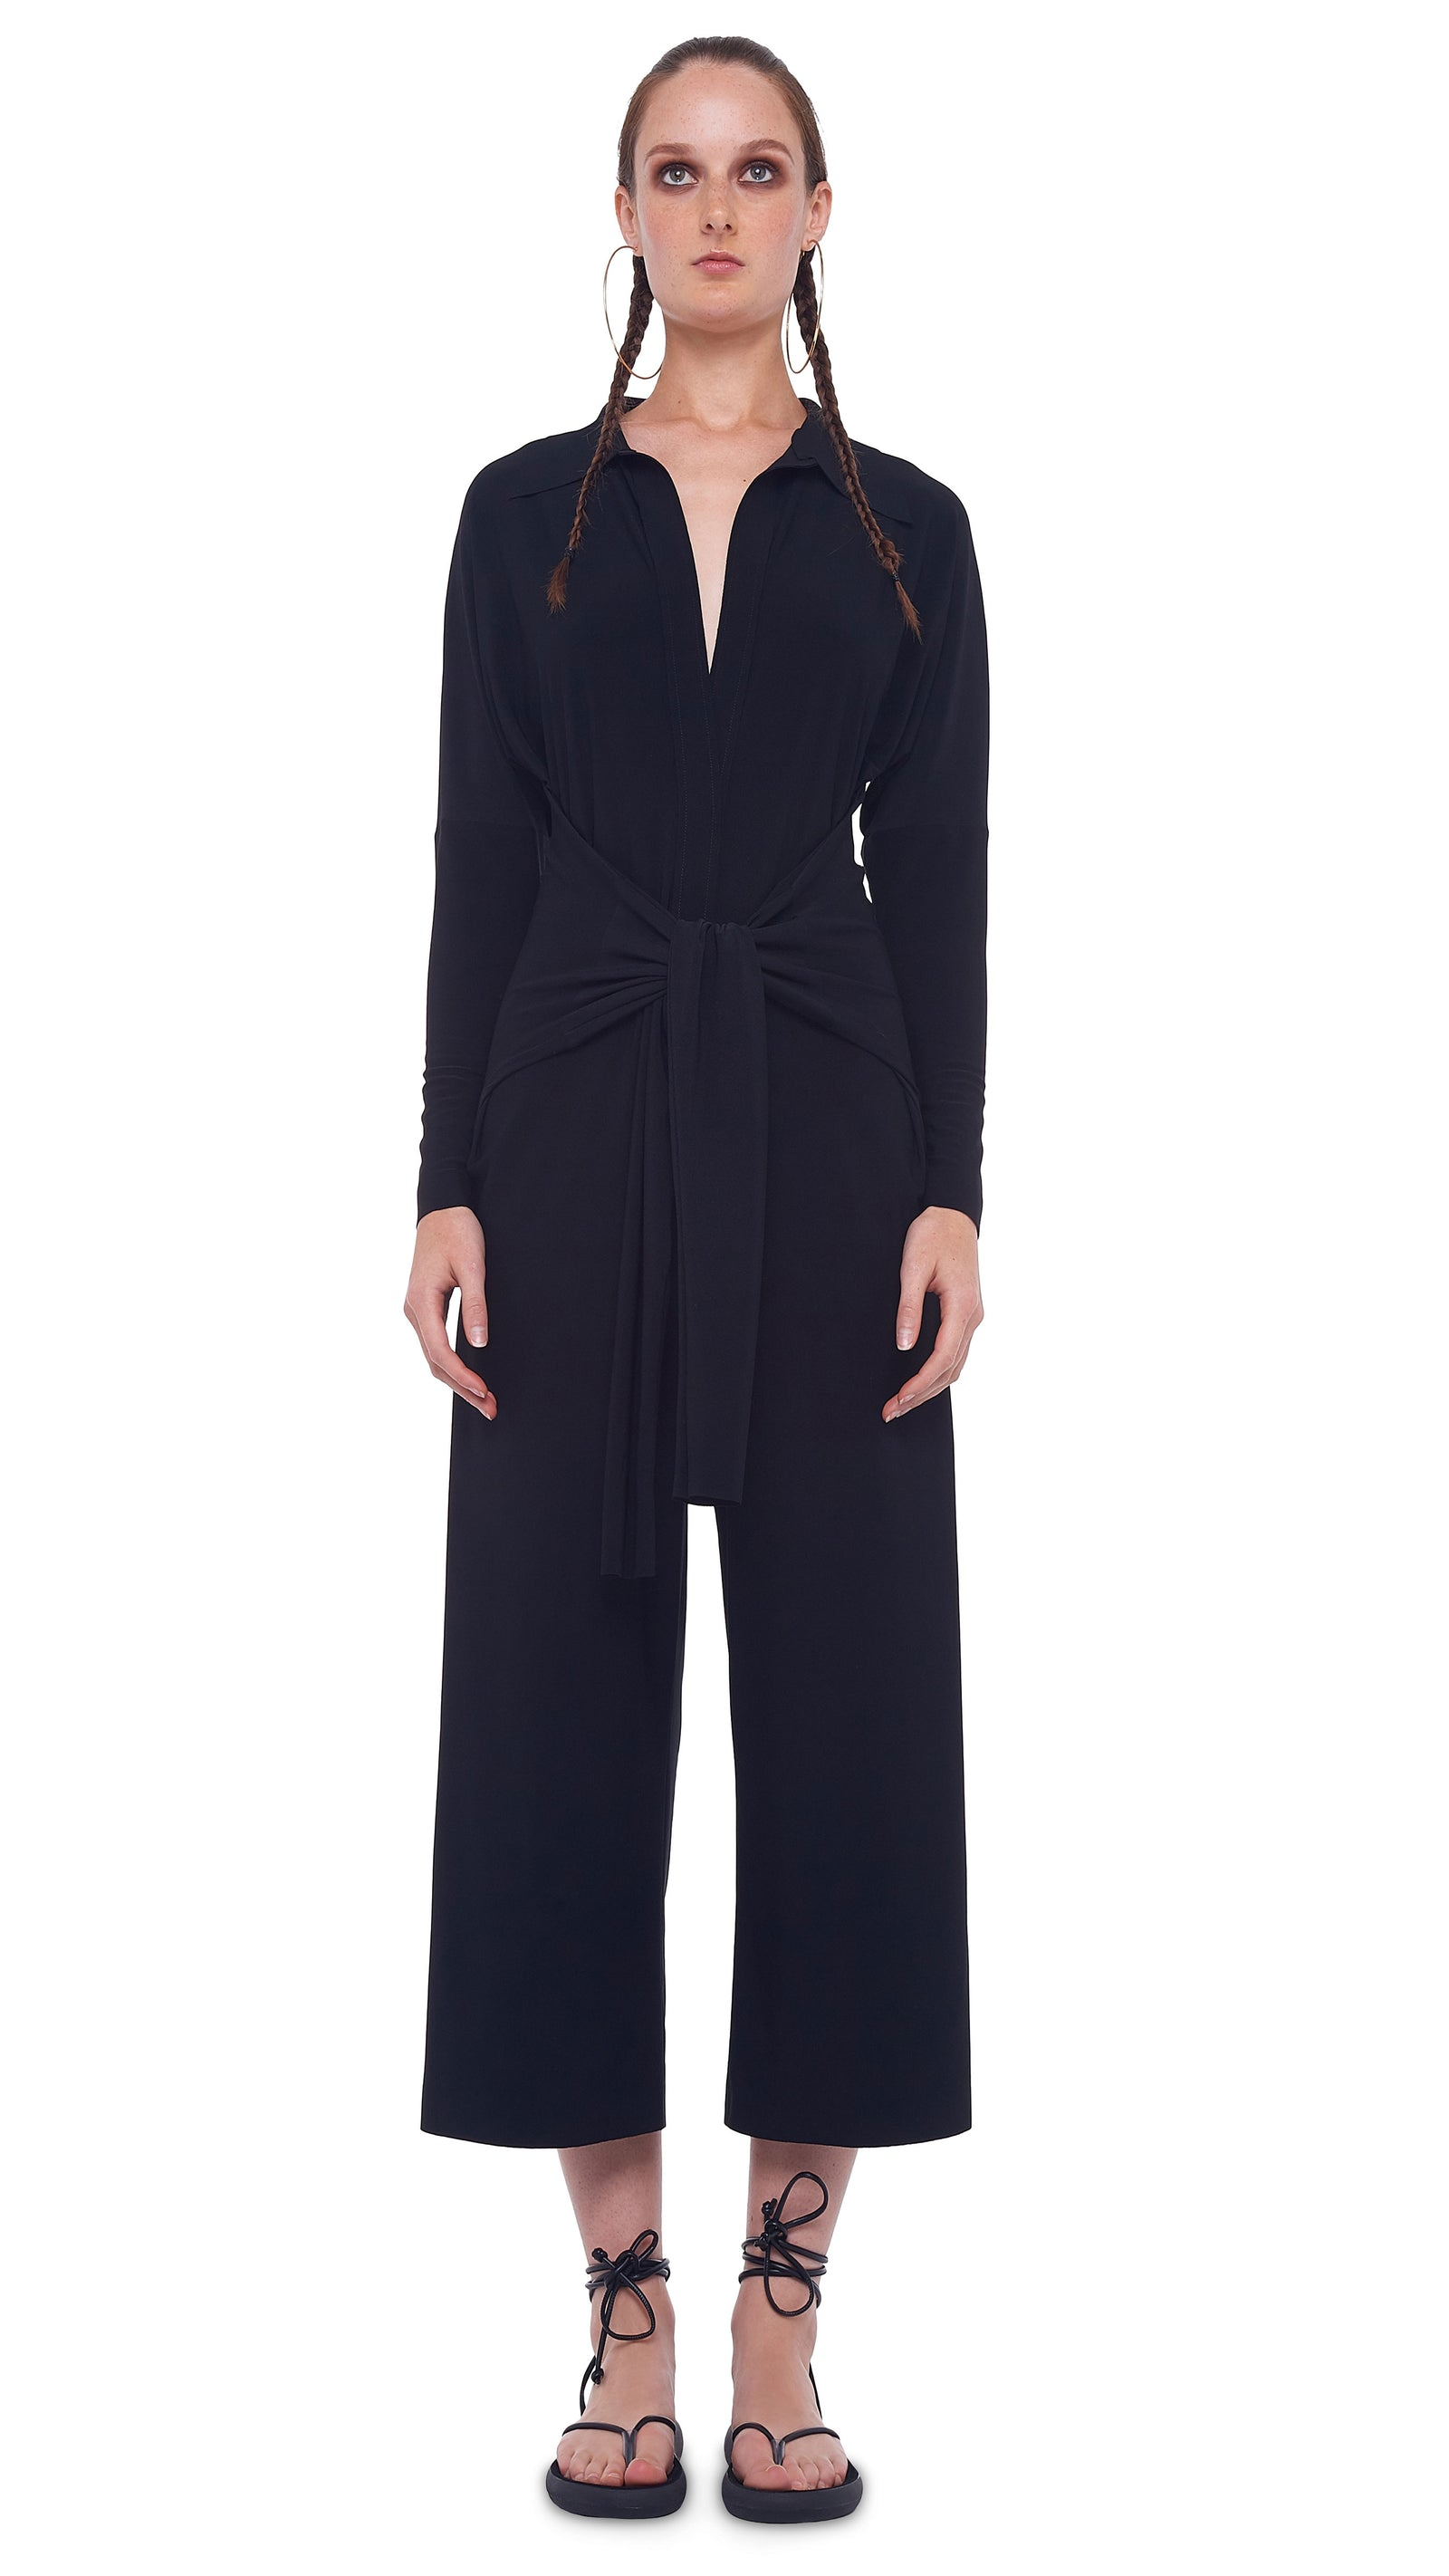 TY FRONT NK SHIRT CROPPED STRAIGHT LEG JUMPSUIT - 1